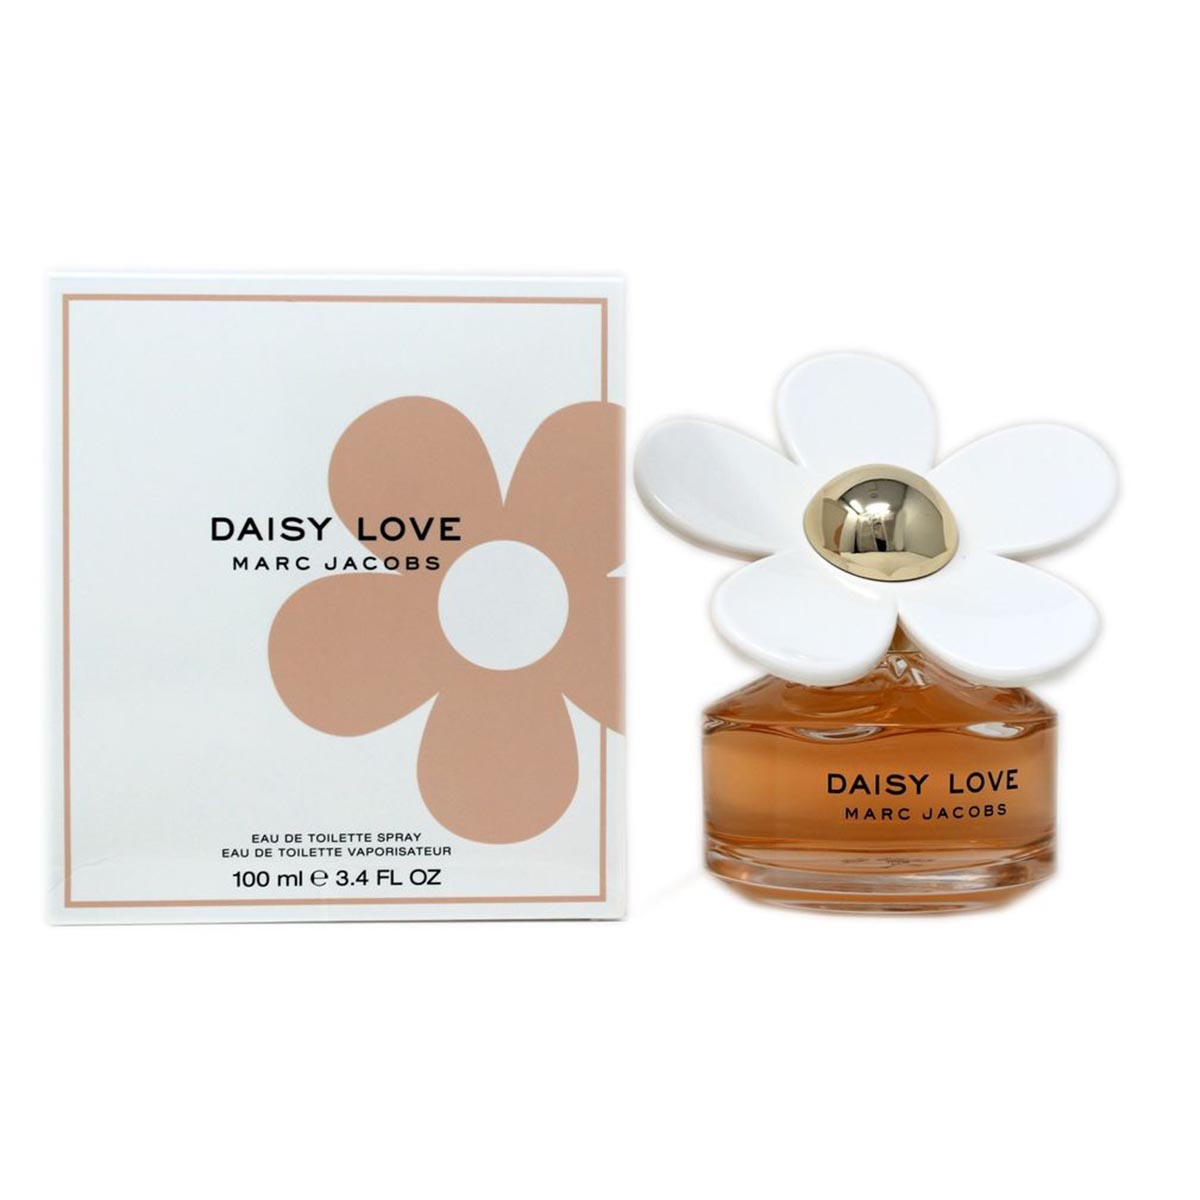 Marc jacobs daisy love eau de toilette 100ml vaporizador